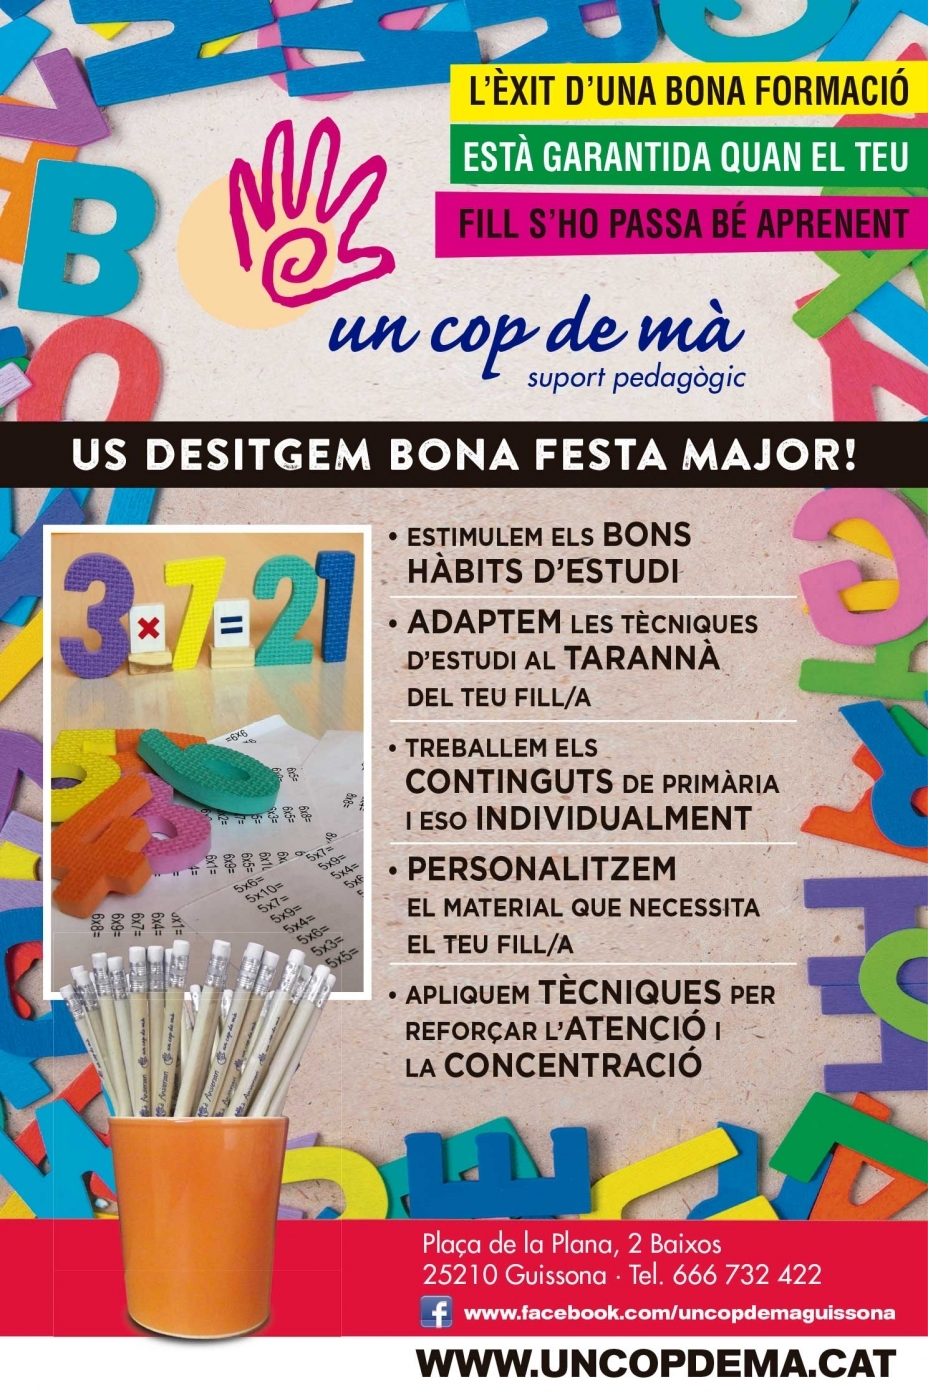 Us desitgem bona festa major!